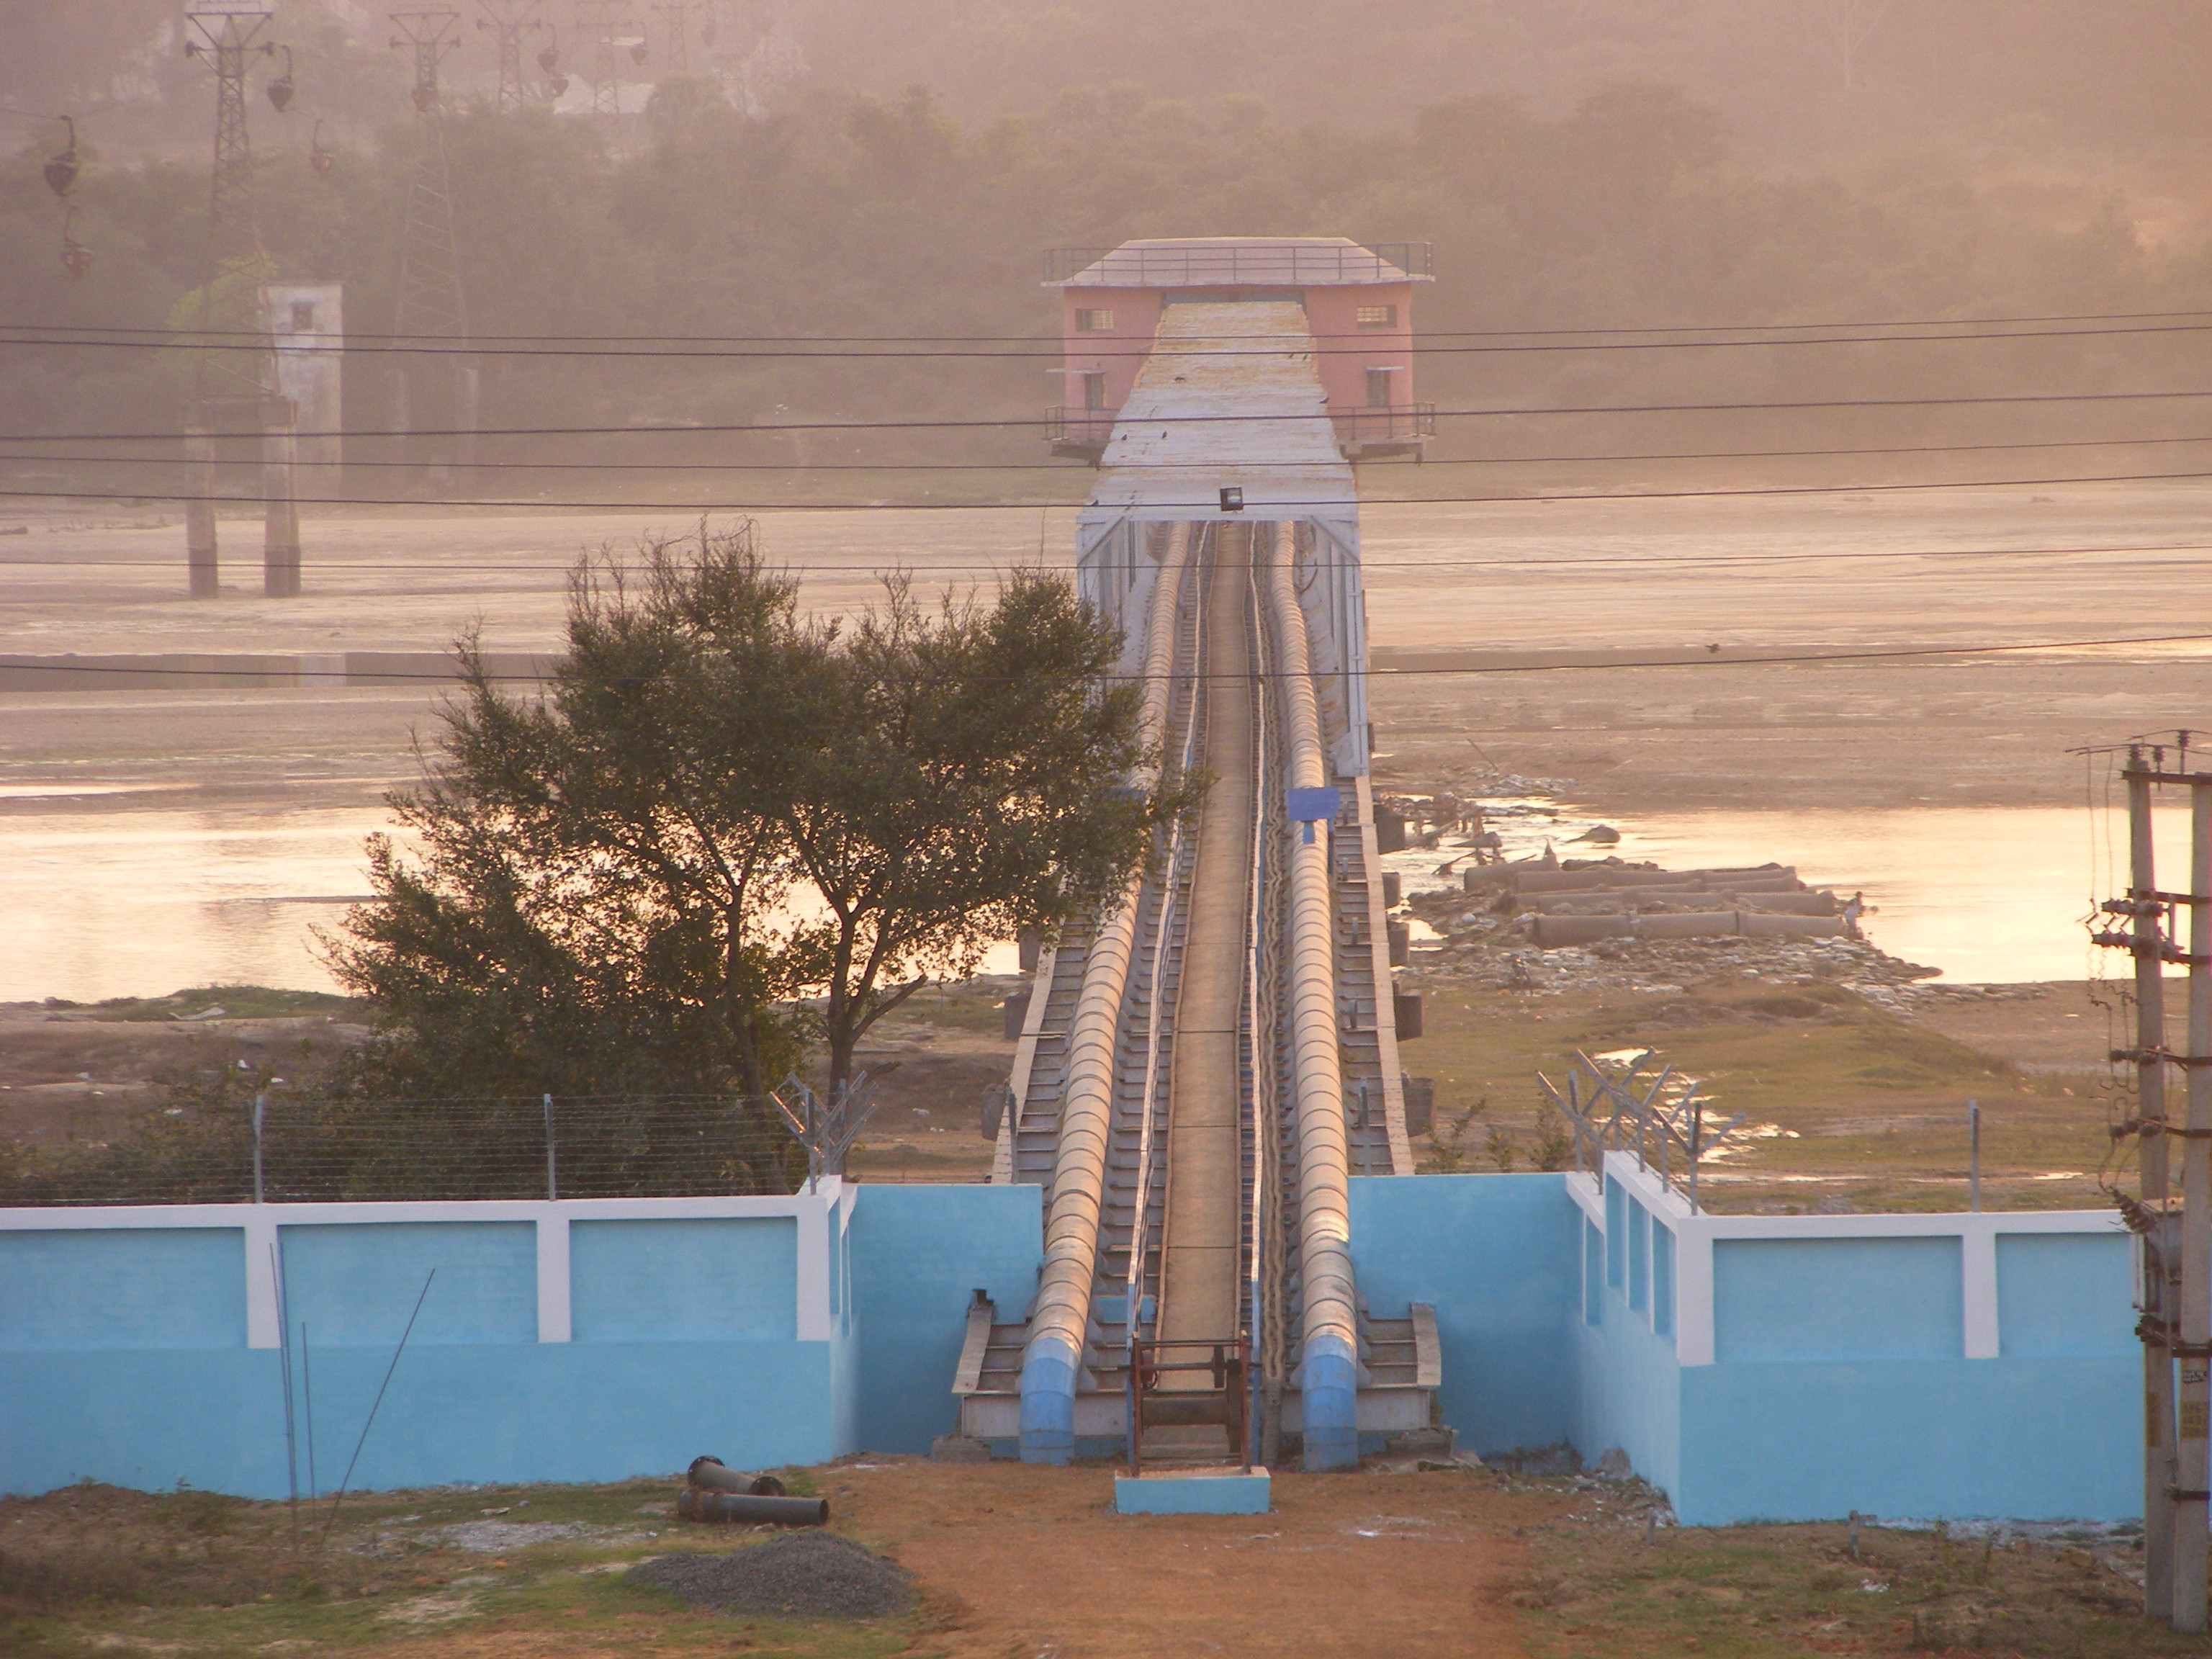 Carrier Bridge for Intake Well at 10 MGD Water Supply Project, Asansol